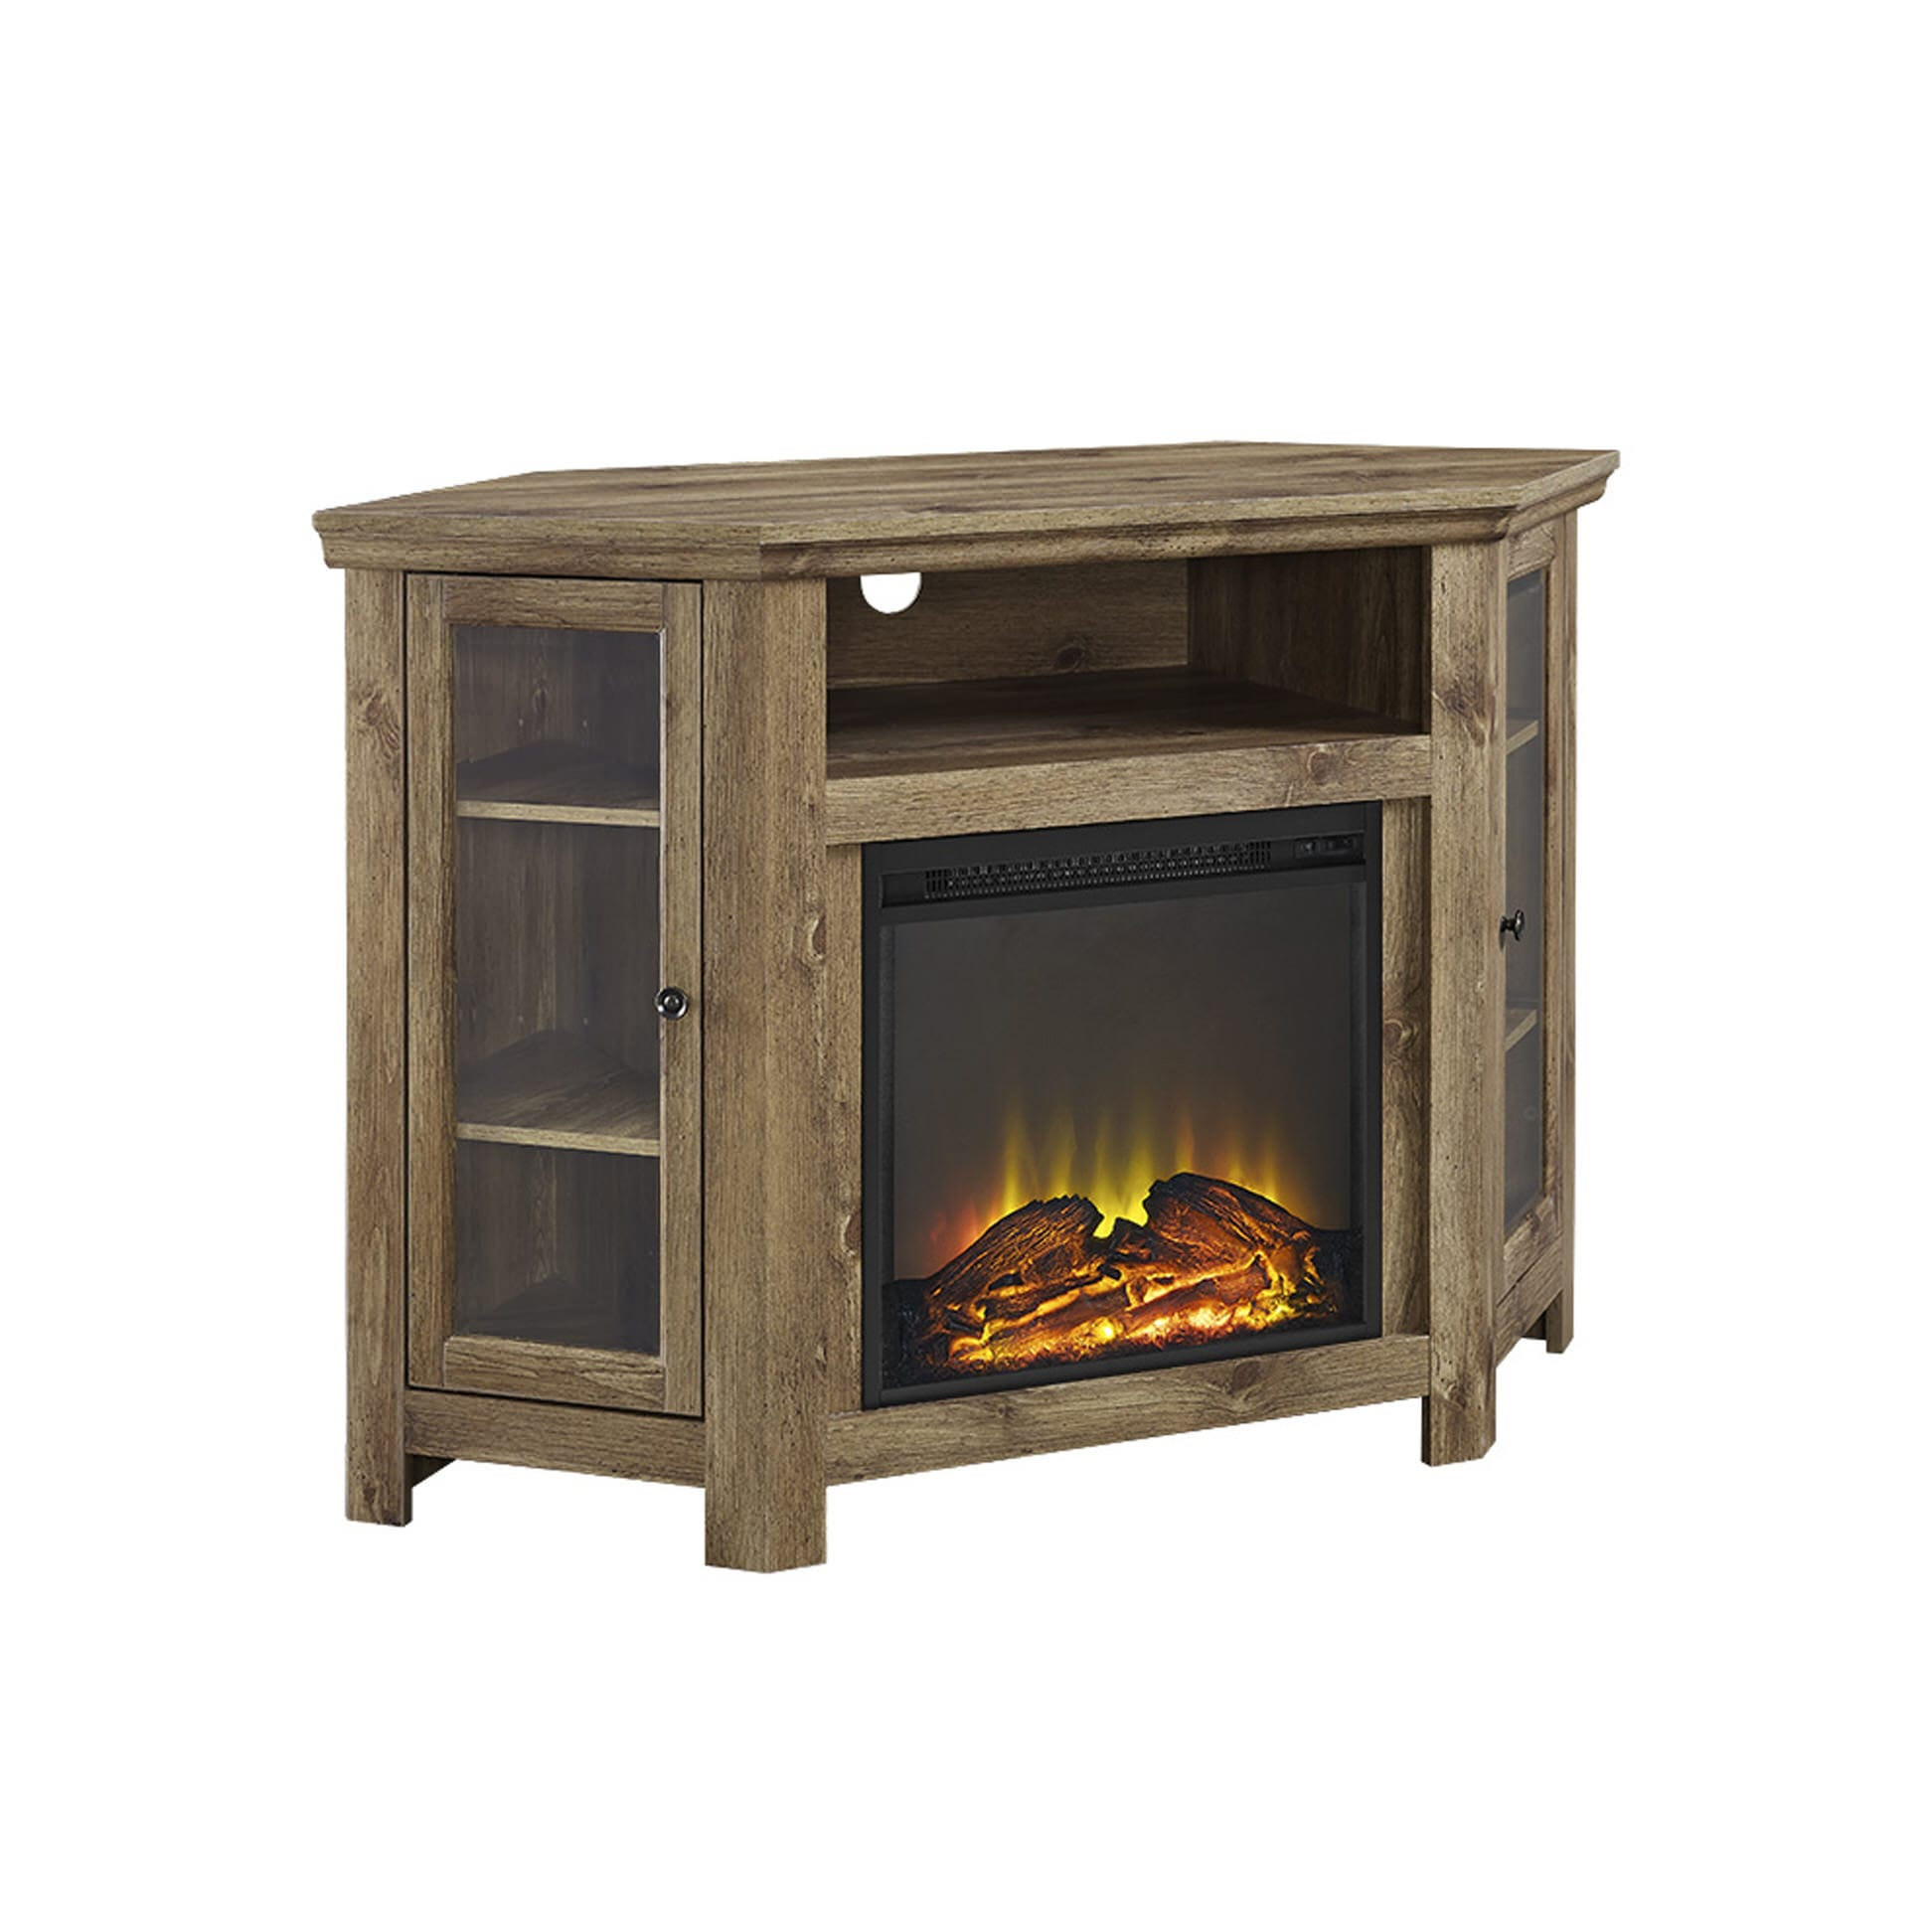 Jackson 48 Corner Fireplace TV Stand - Barnwood by Walker Edison Utilize your corner space with this 48 wood media stand with electric fireplace. Its corner design makes this the perfect space saving unit while creating a warm